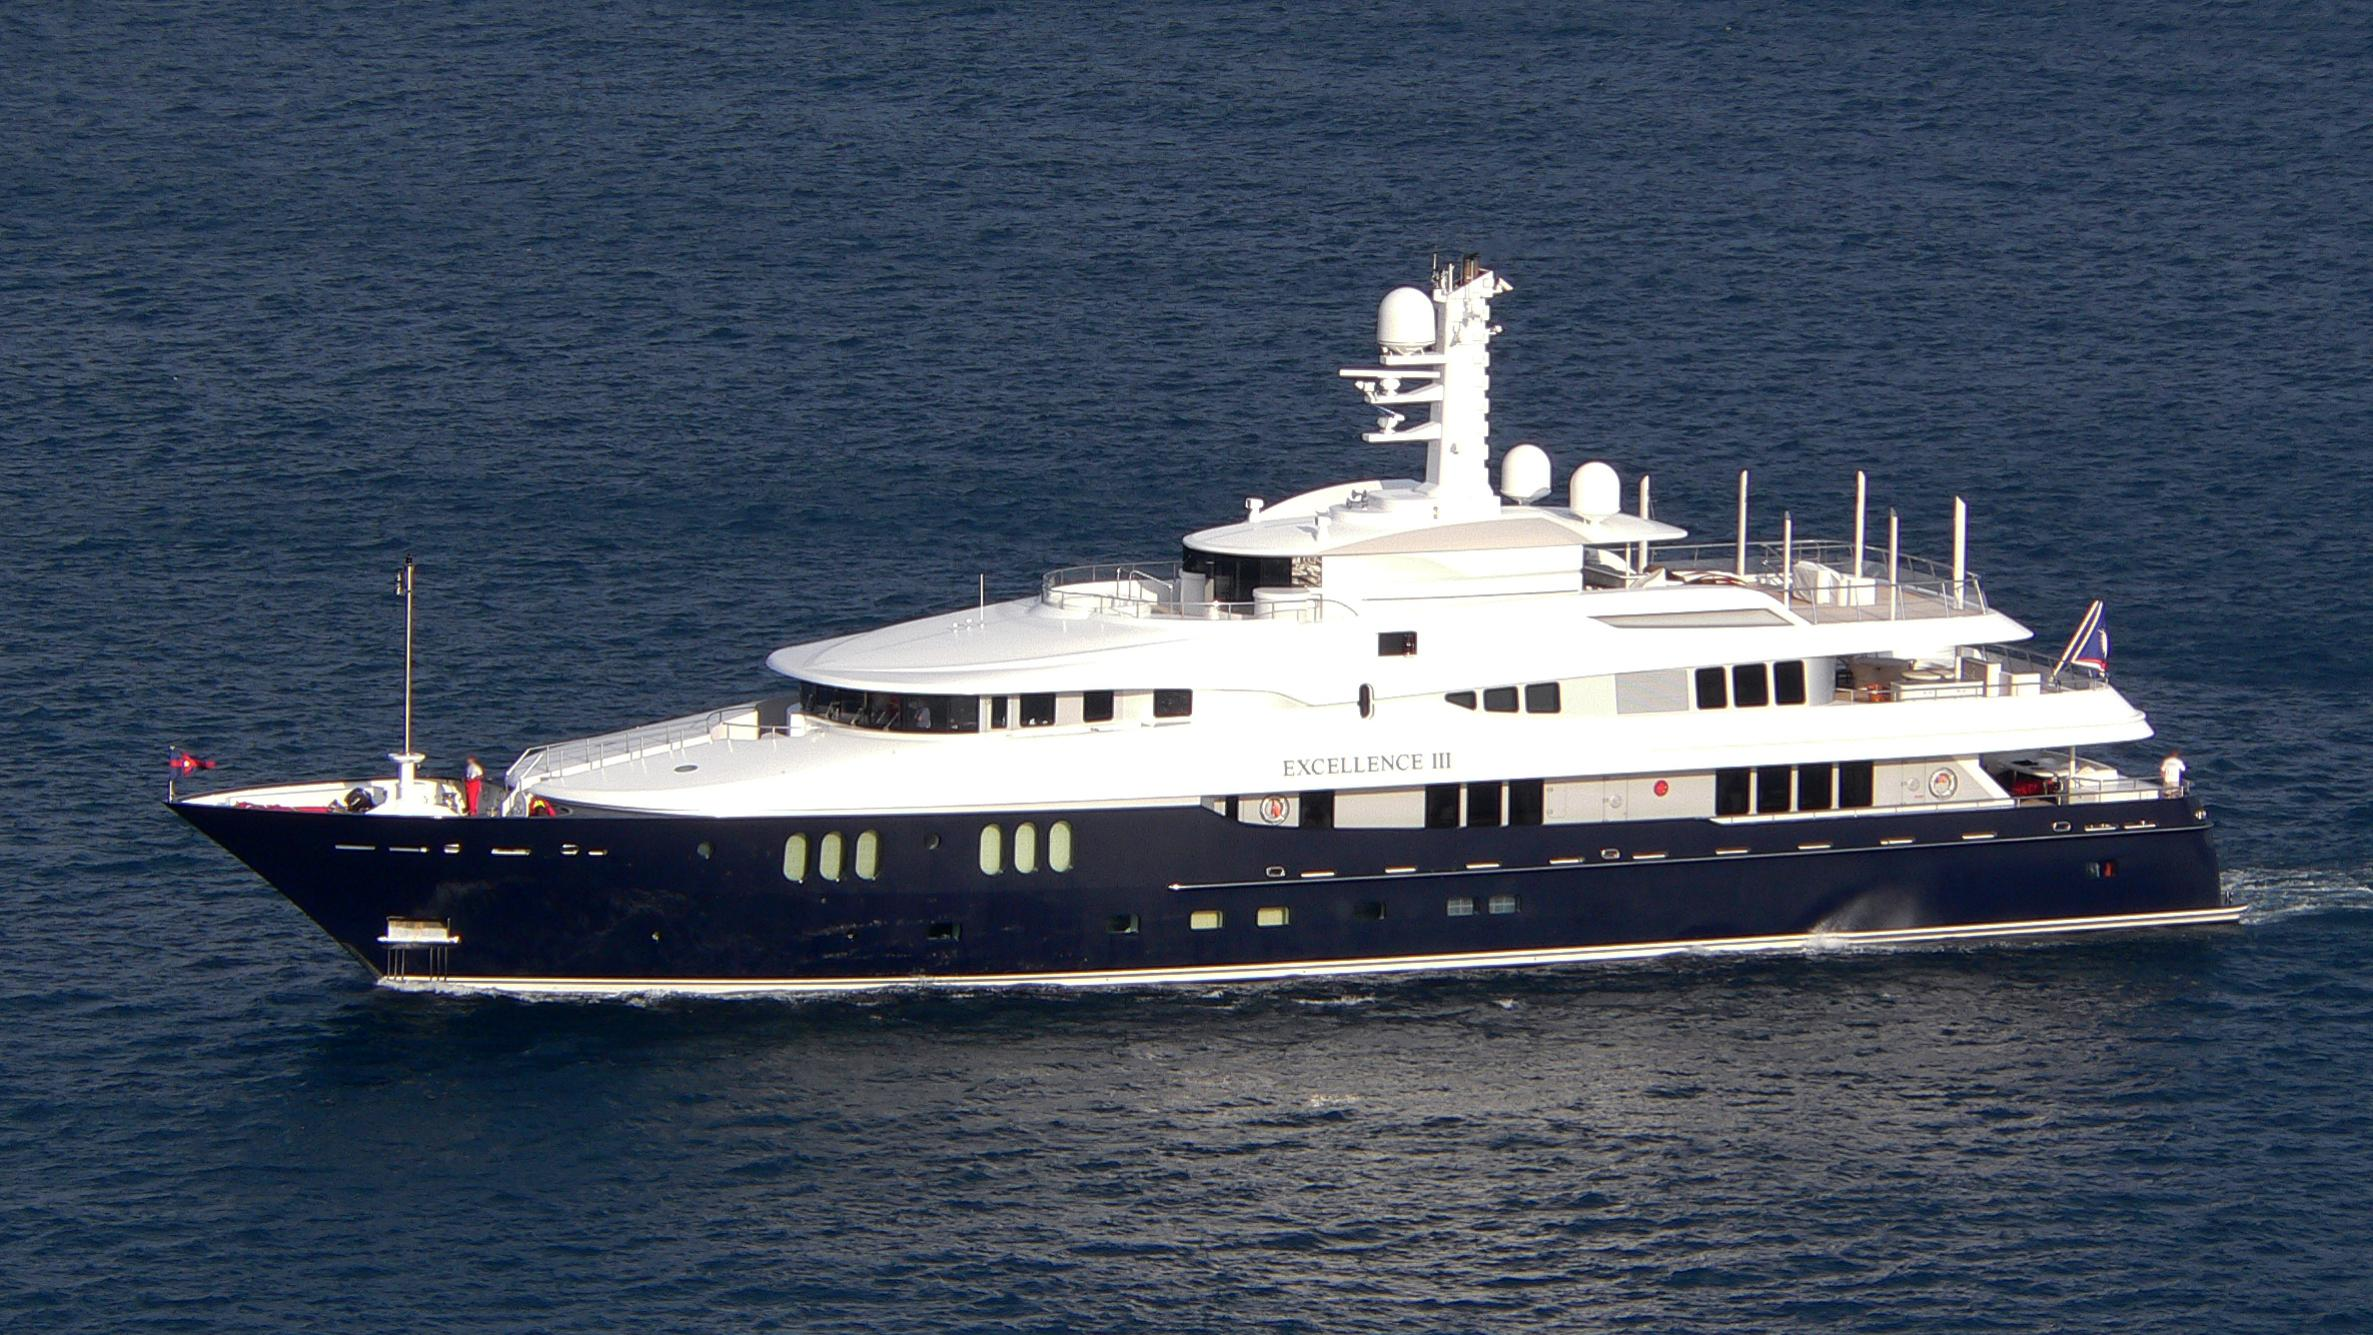 dream-motor-yacht-abeking-rasmussen-2001-60m-profile-before-refit